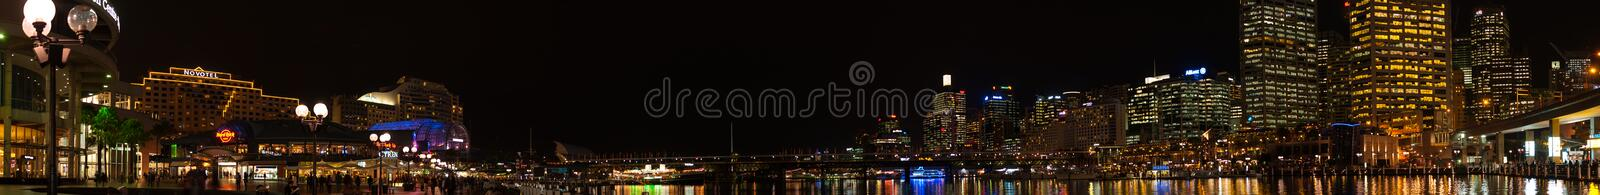 Night Cityscape panoramic photography at Darling Harbour, NSW. royalty free stock images